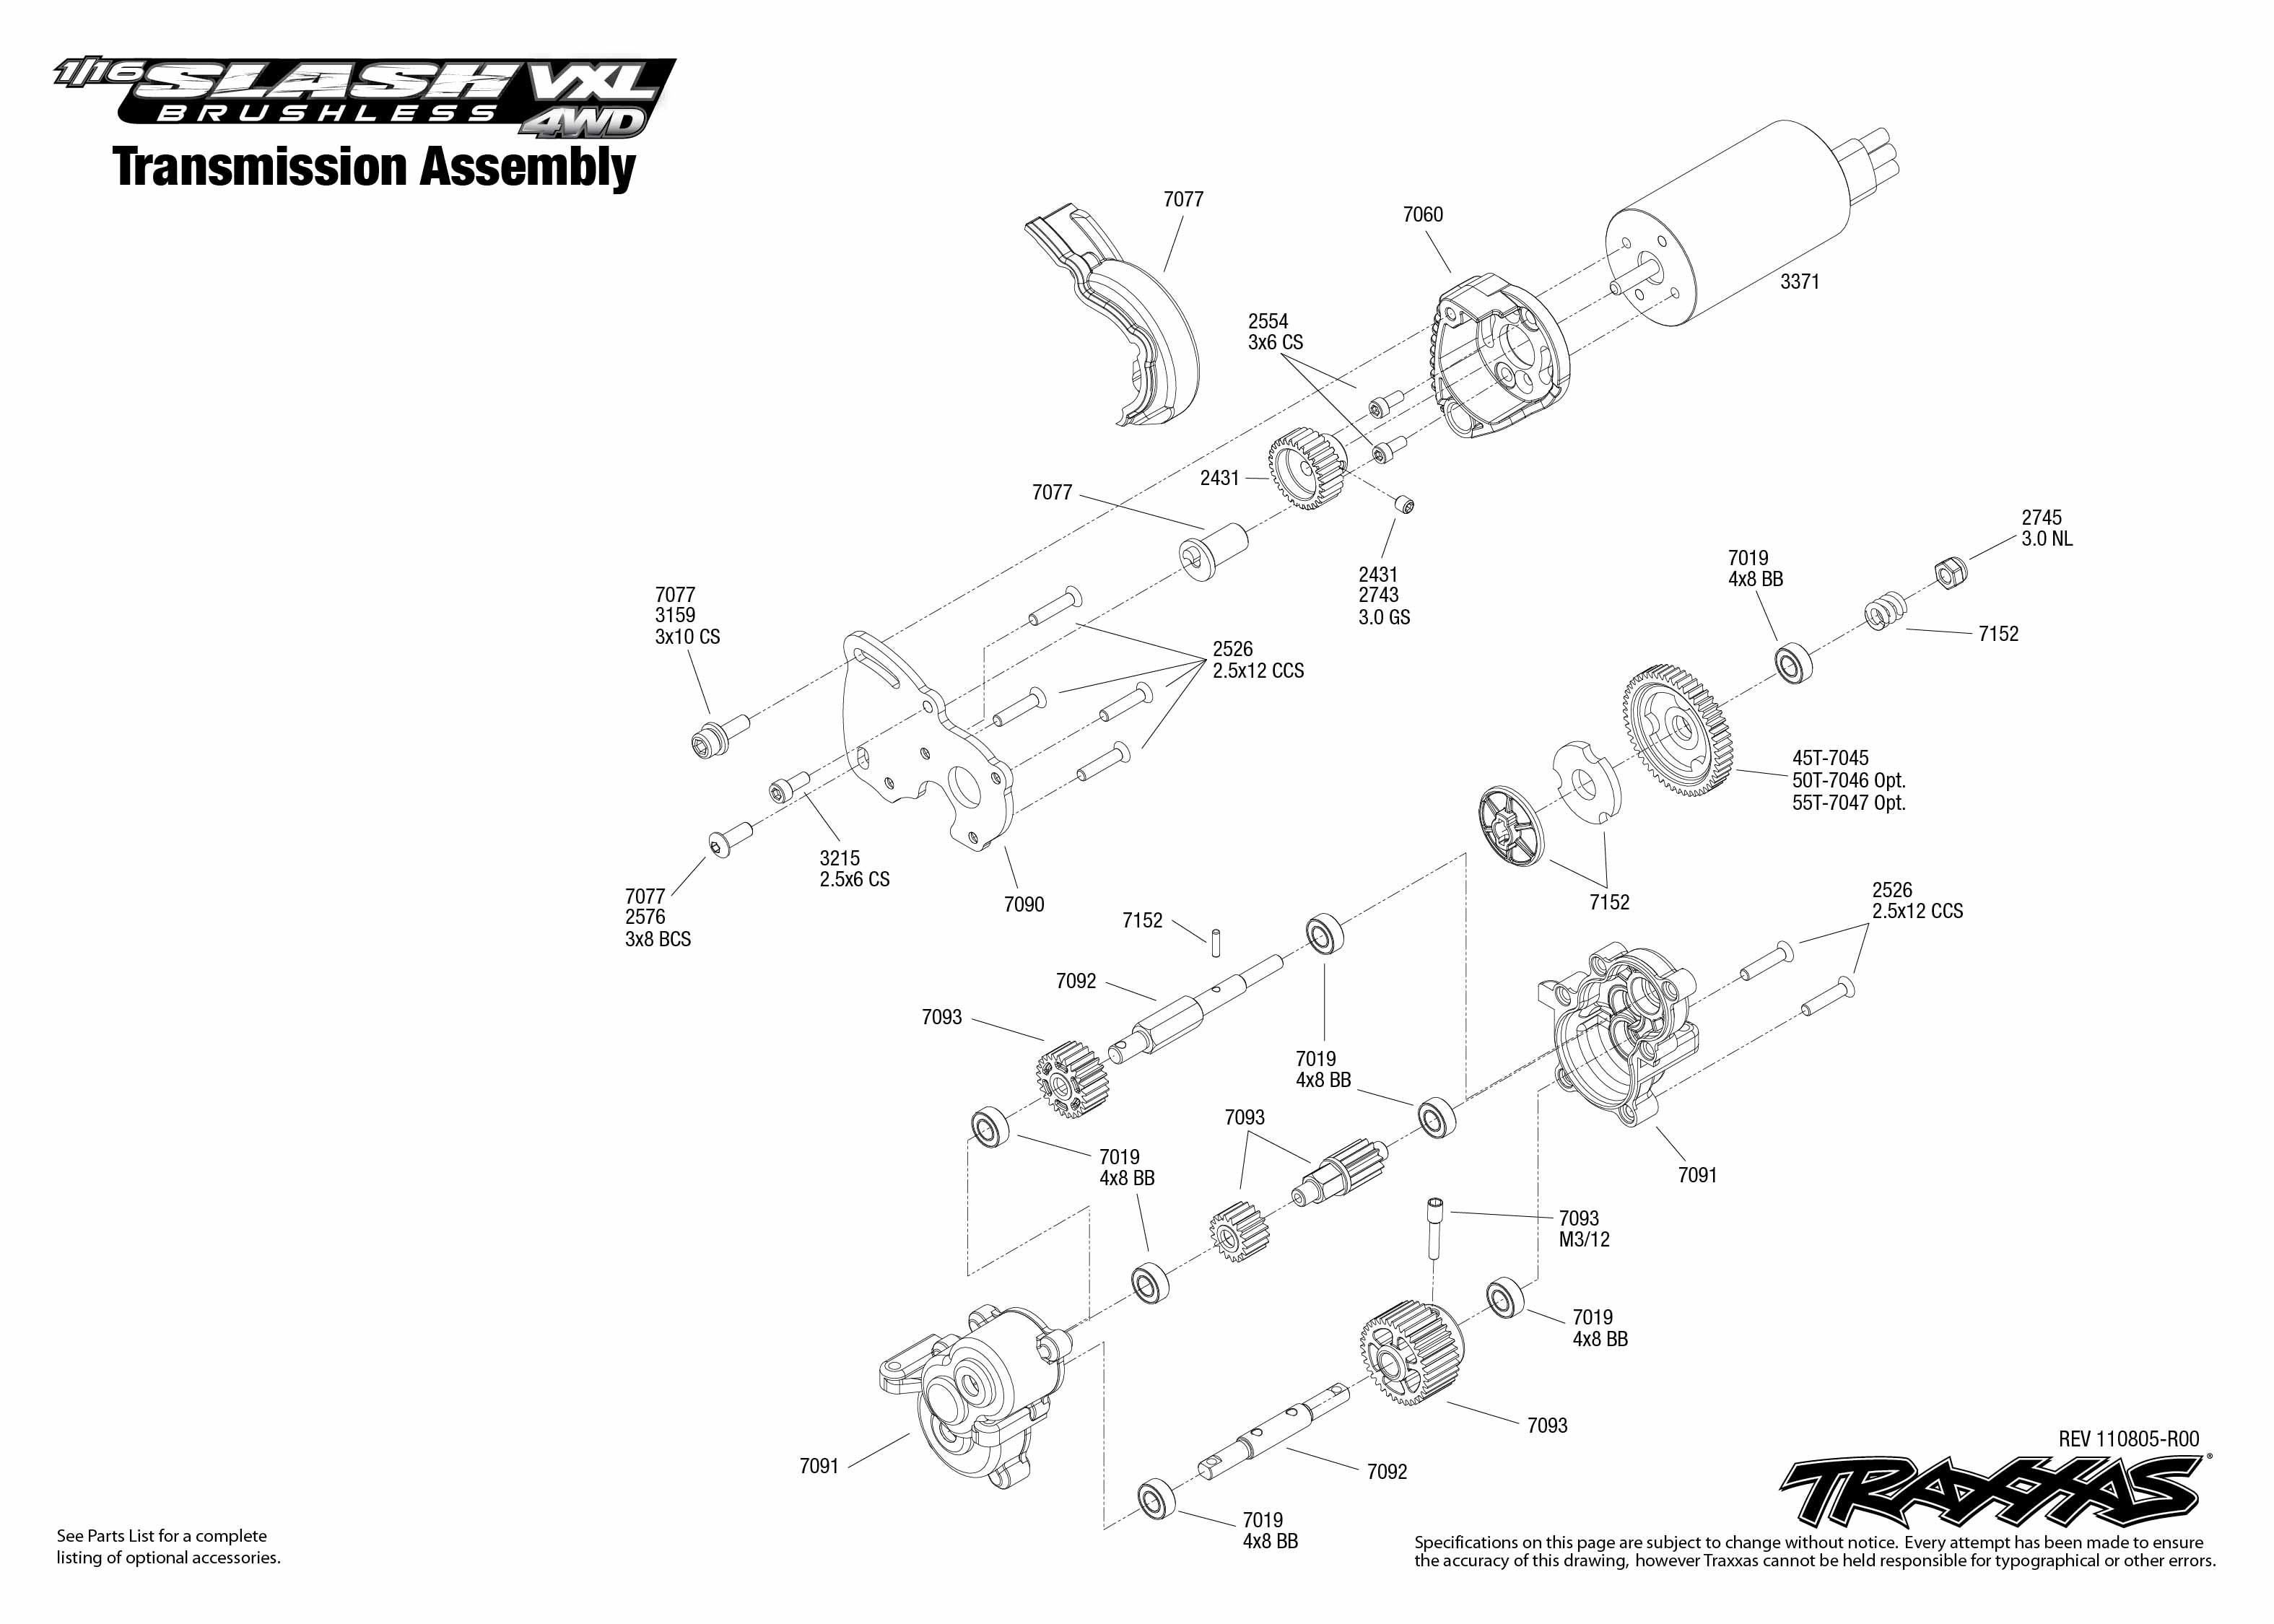 Wiring Database 2020: 29 Traxxas Slash 4x4 Parts Diagram